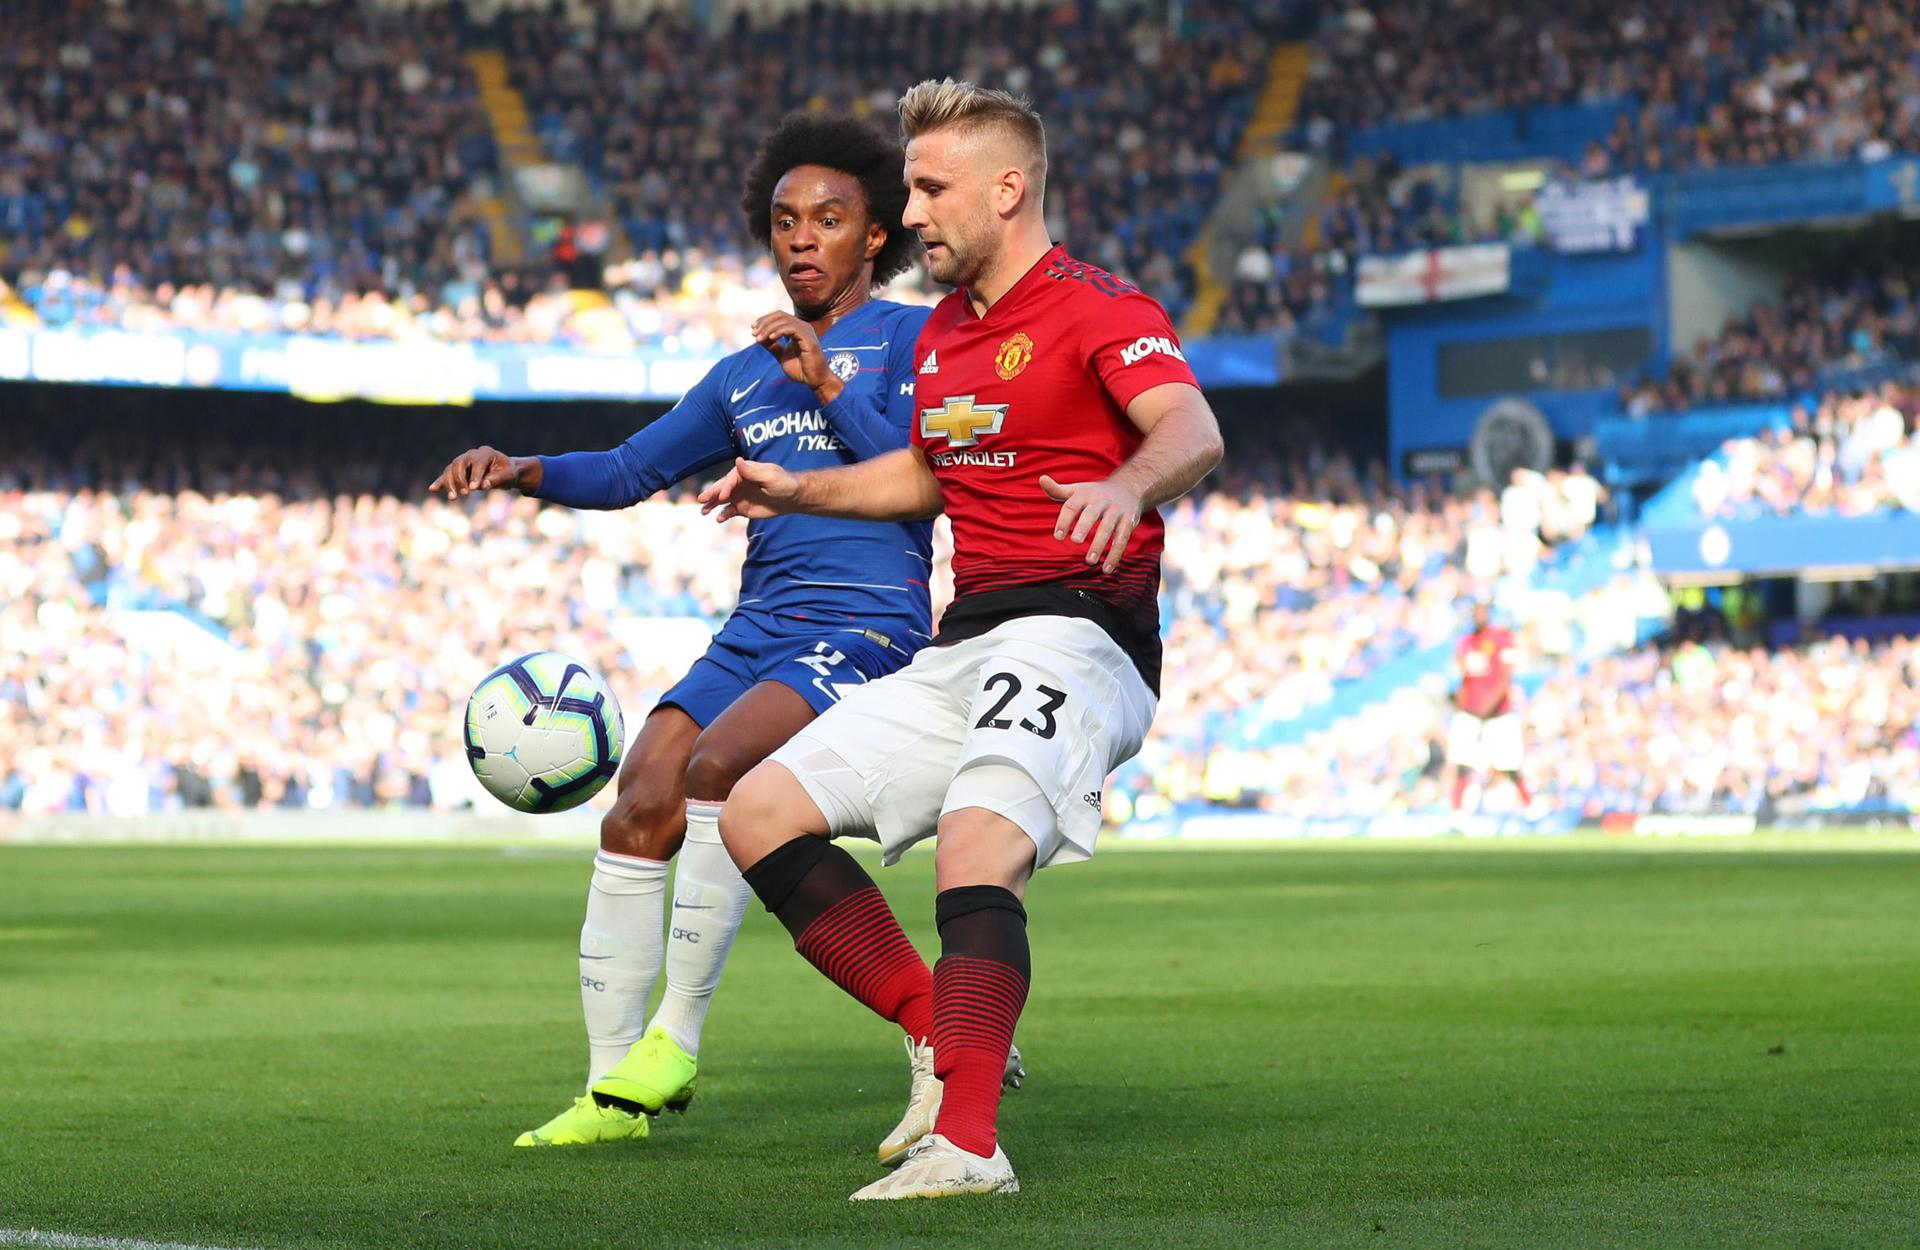 Willian et Luke Shaw